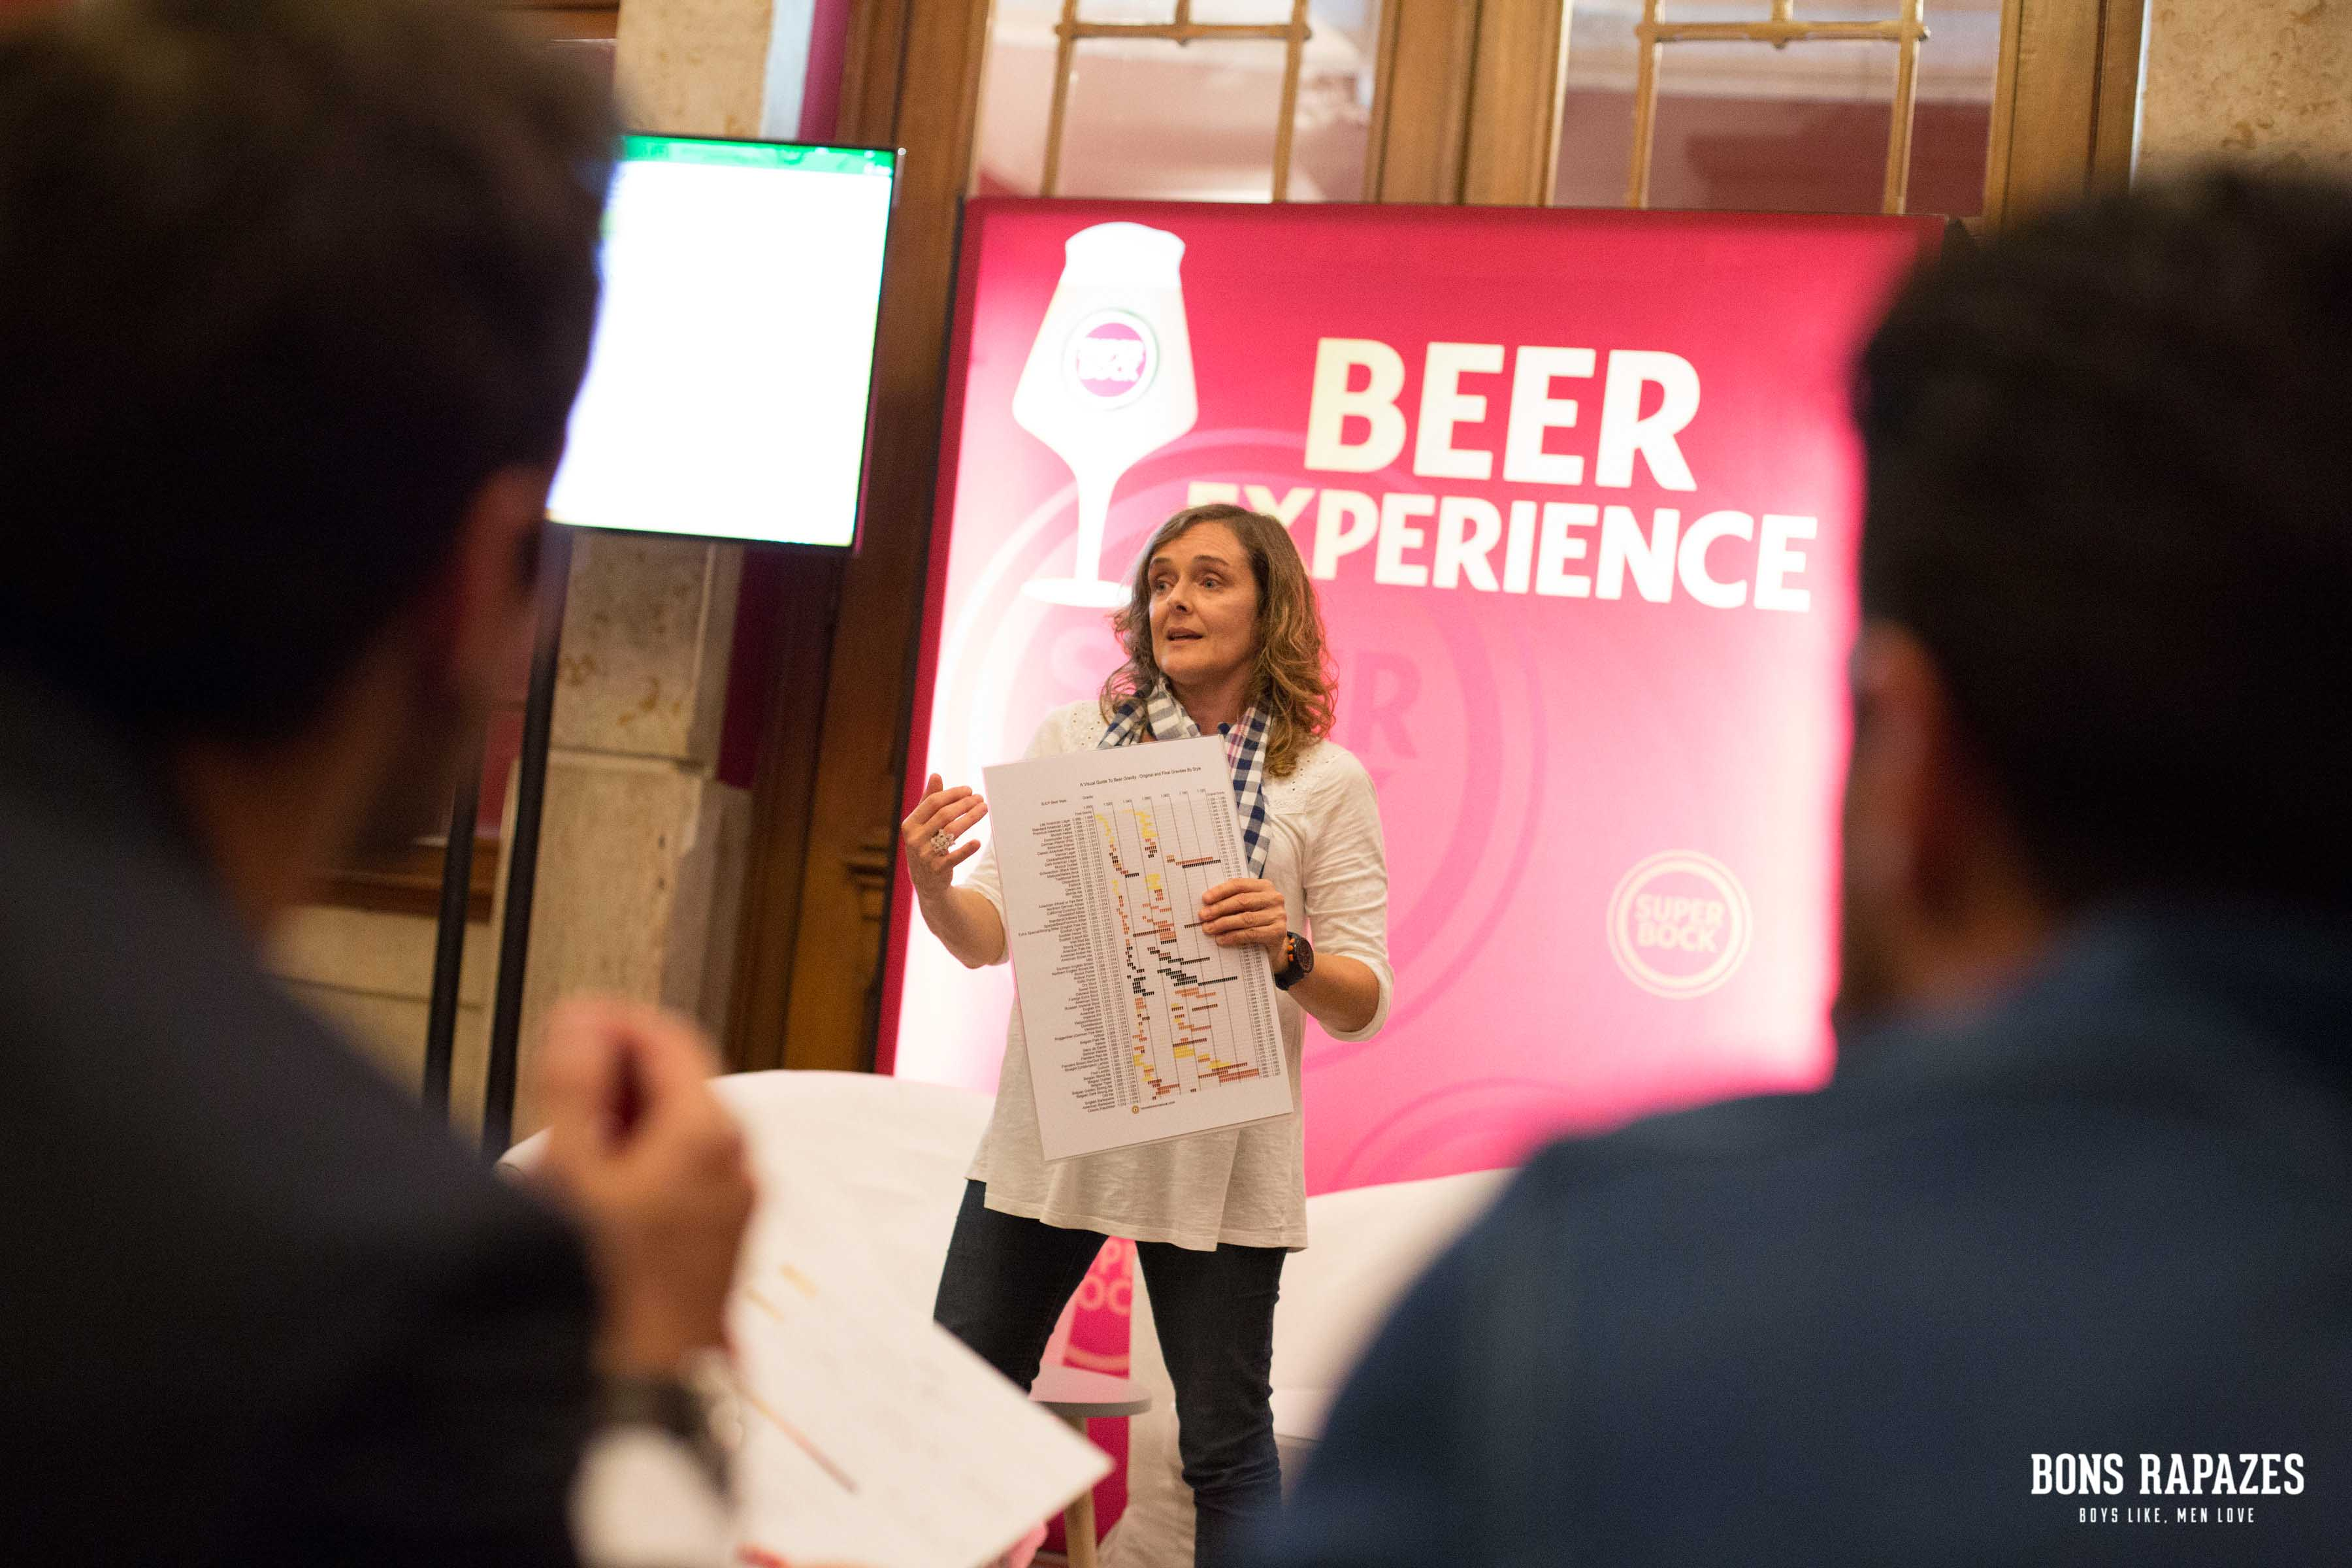 bons-rapazes-super-bock-beer-experience-19